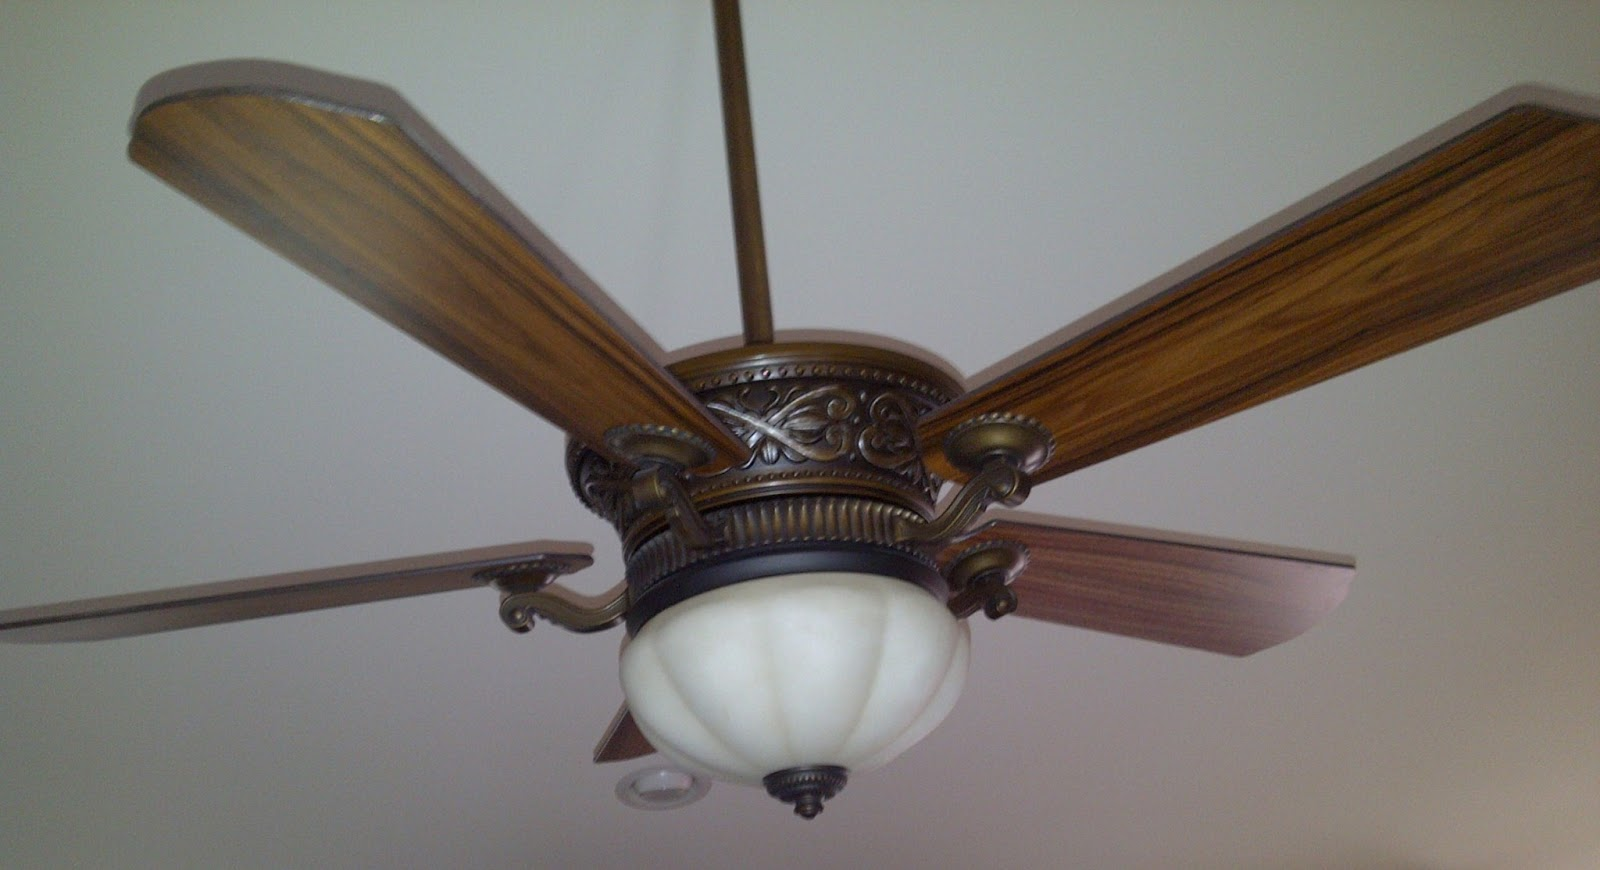 medium resolution of harbor breeze wakefield ceiling fan with uplight and remote control image source dr penny pincher